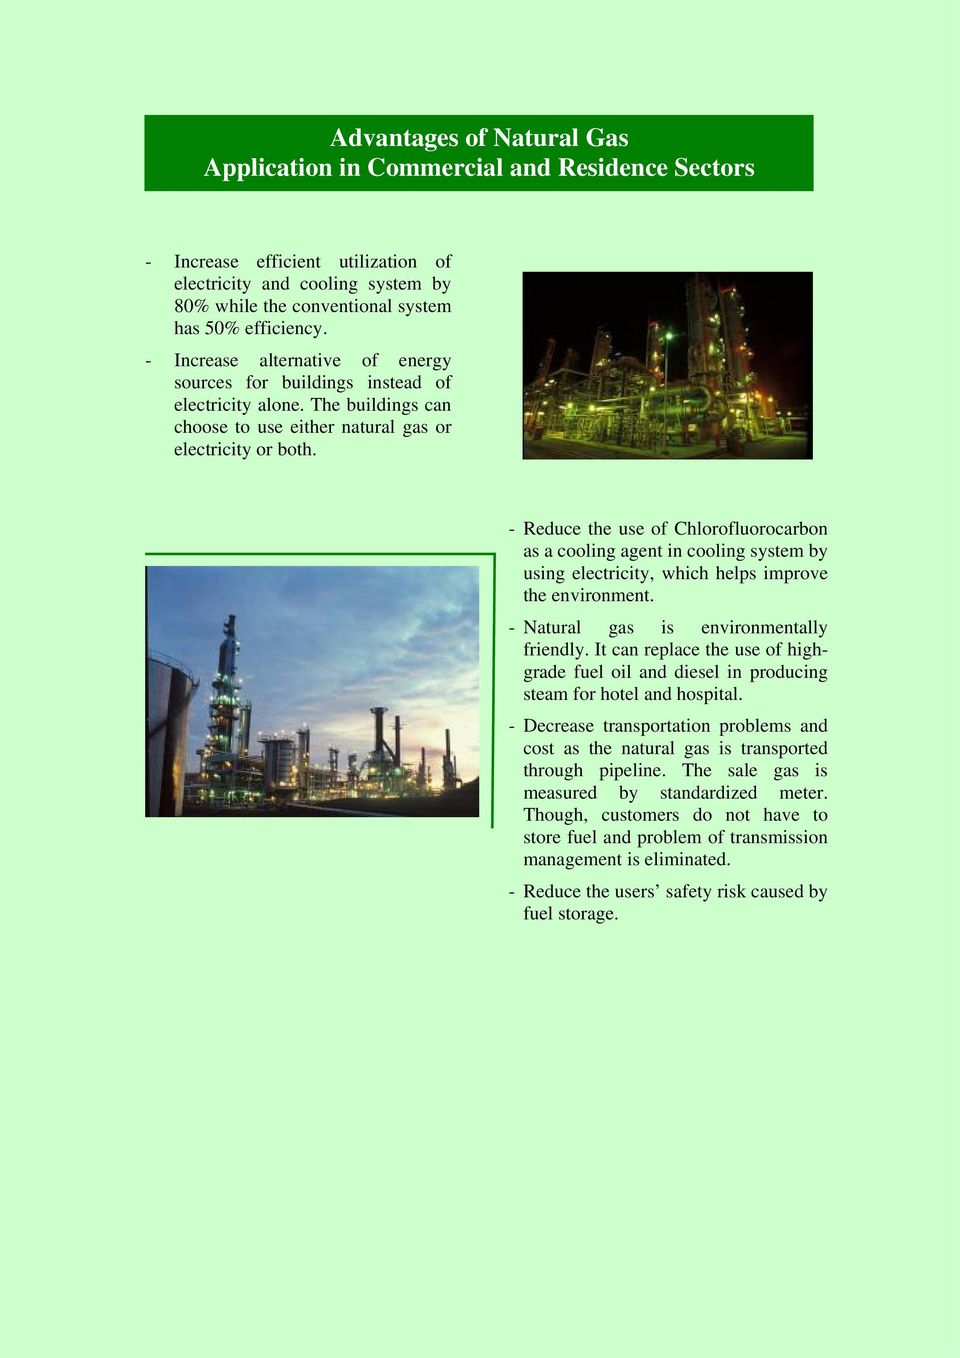 - Reduce the use of Chlorofluorocarbon as a cooling agent in cooling system by using electricity, which helps improve the environment. - Natural gas is environmentally friendly.